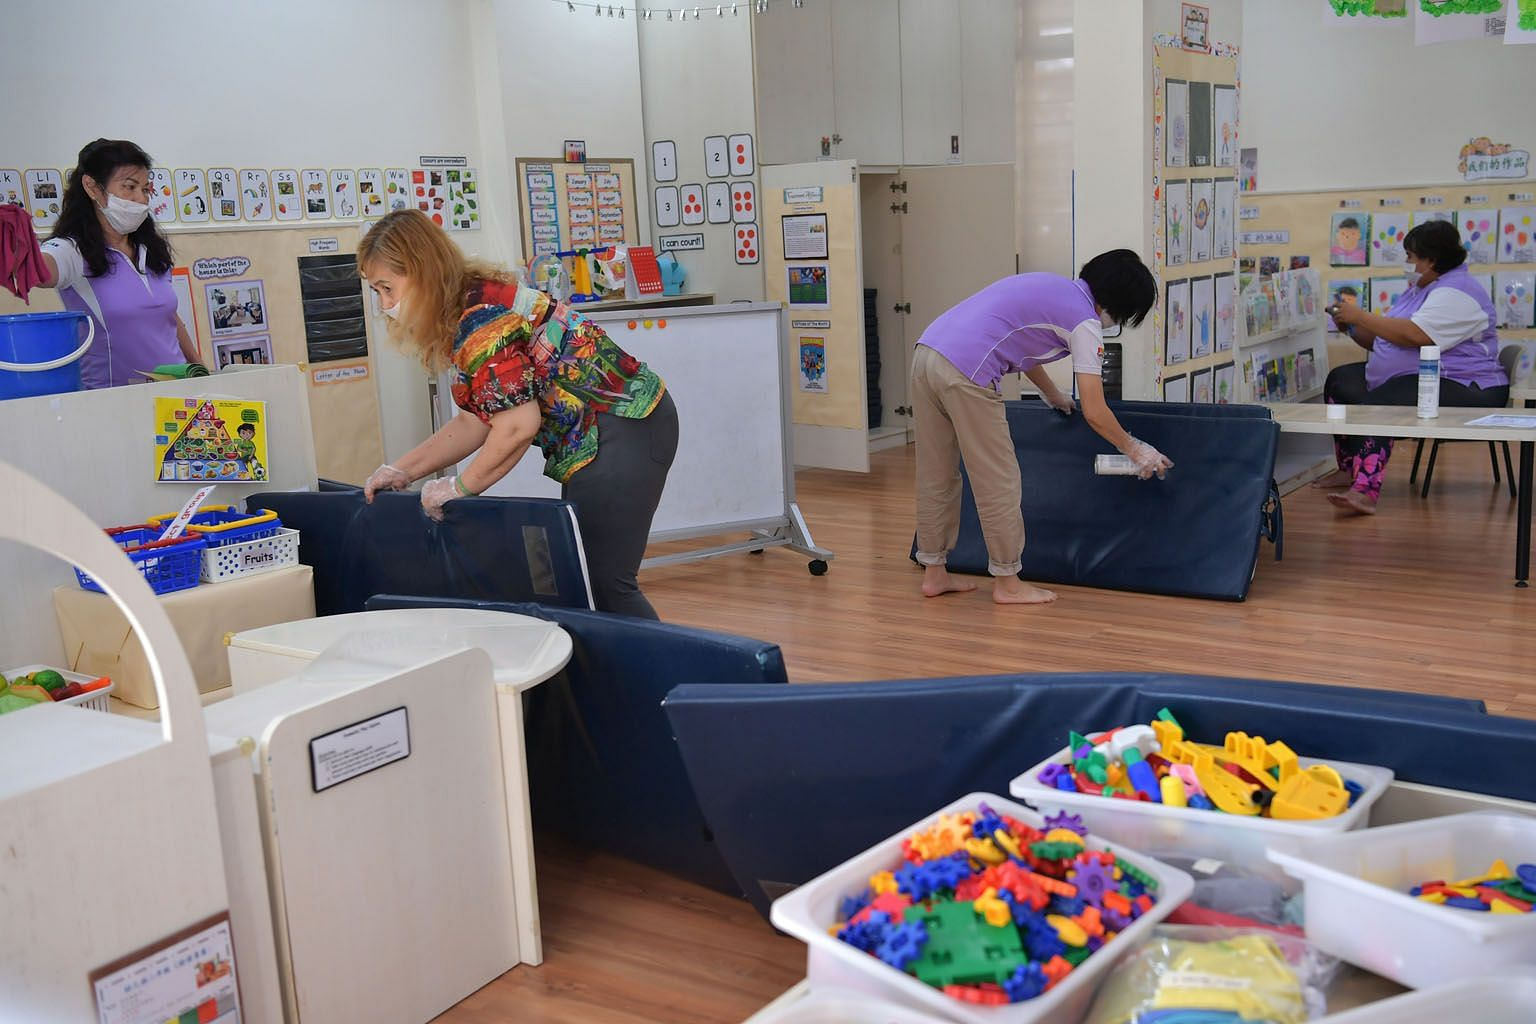 Staff cleaning the Nursery 2 classroom at a PAP Community Foundation Sparkletots pre-school at Block 305 Clementi Avenue 4 yesterday.